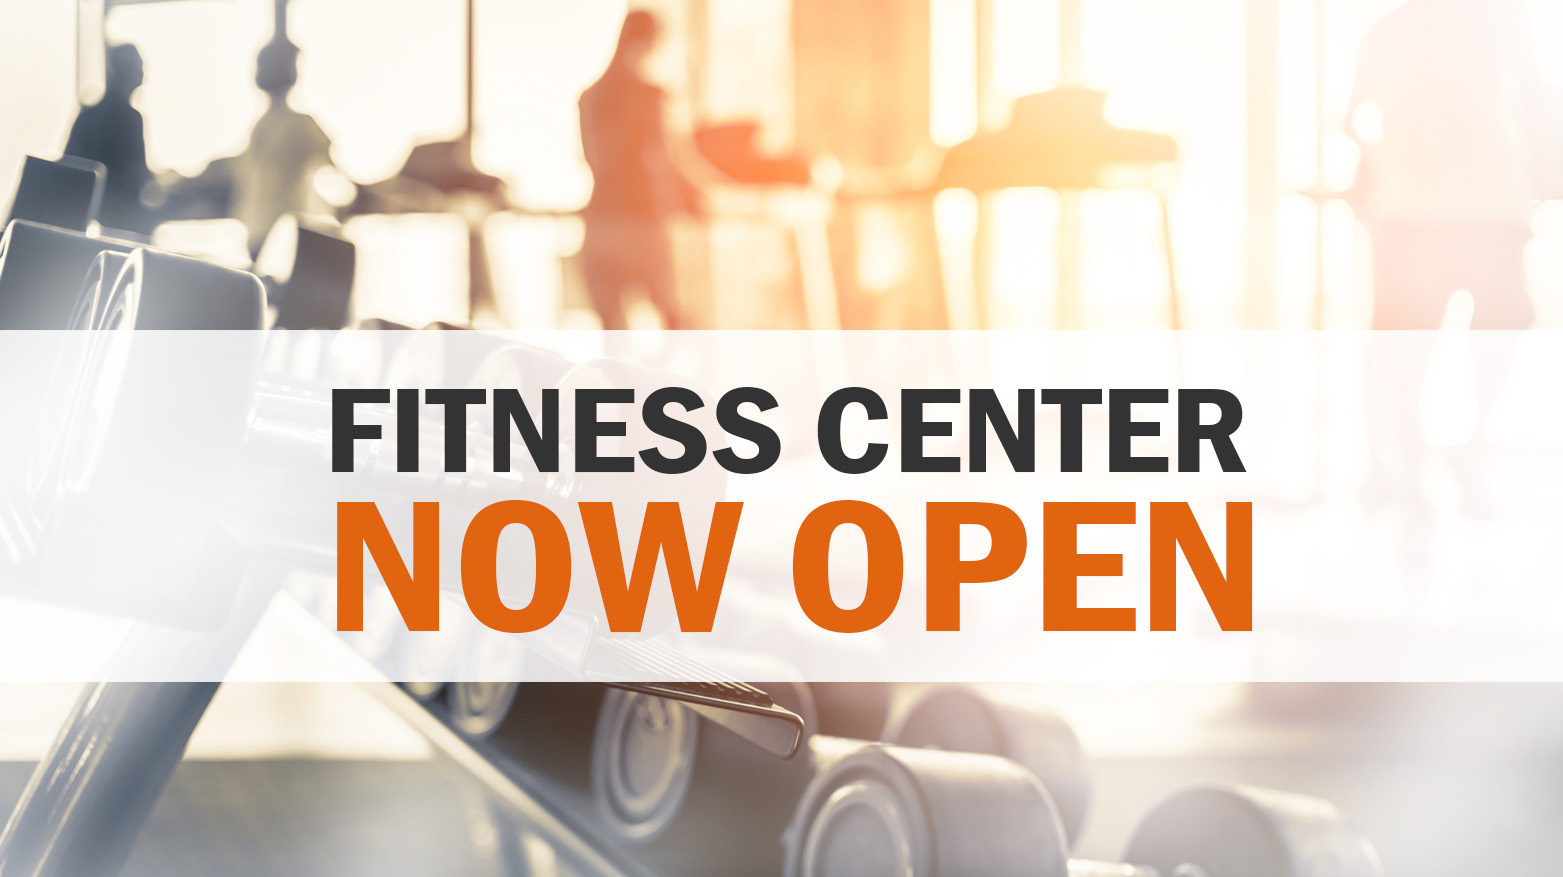 Katterbach Fitness Center is NOW OPEN!